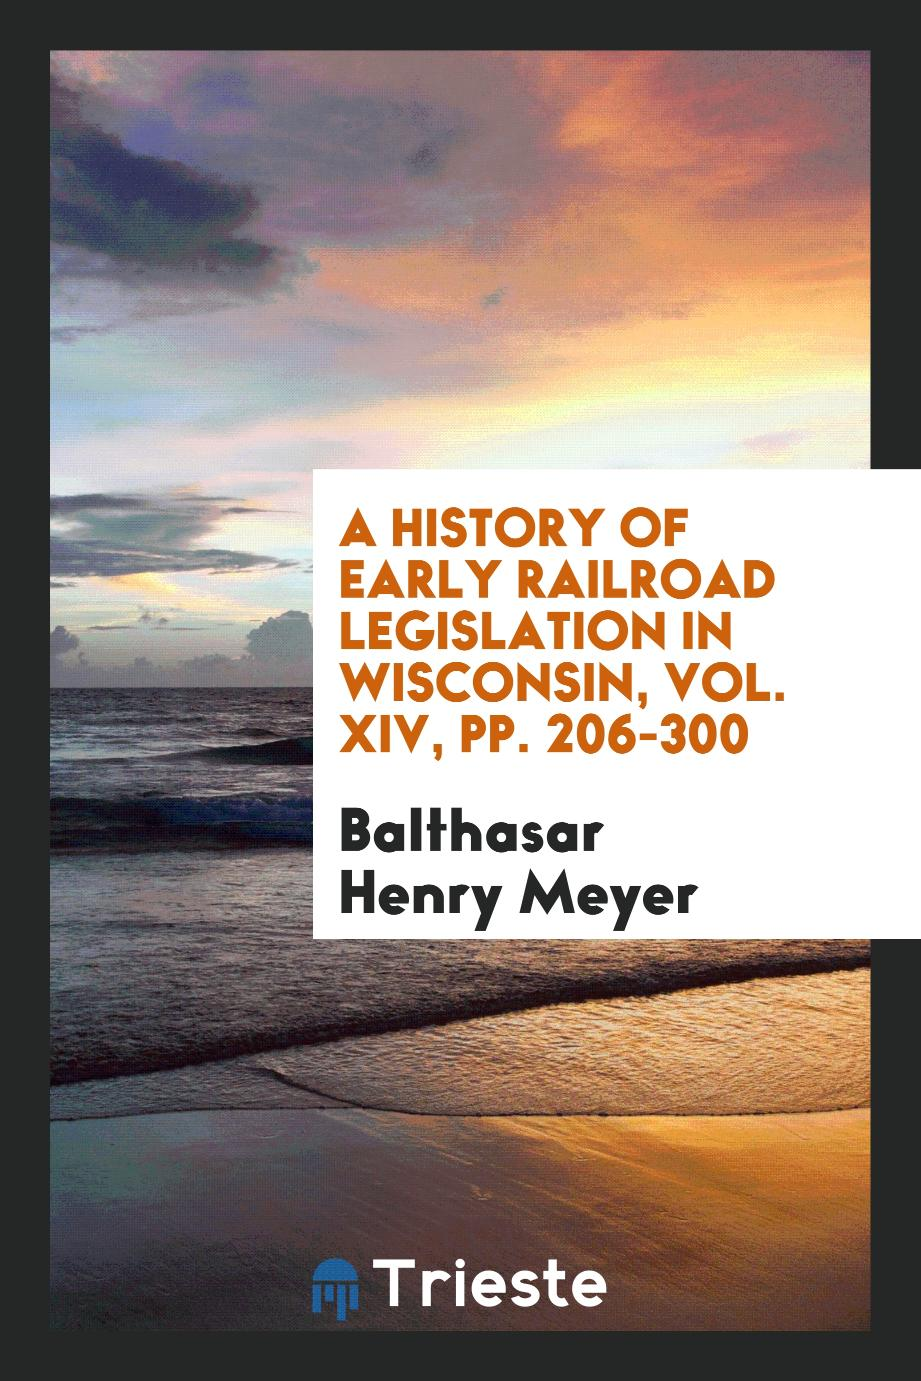 A History of Early Railroad Legislation in Wisconsin, Vol. XIV, pp. 206-300